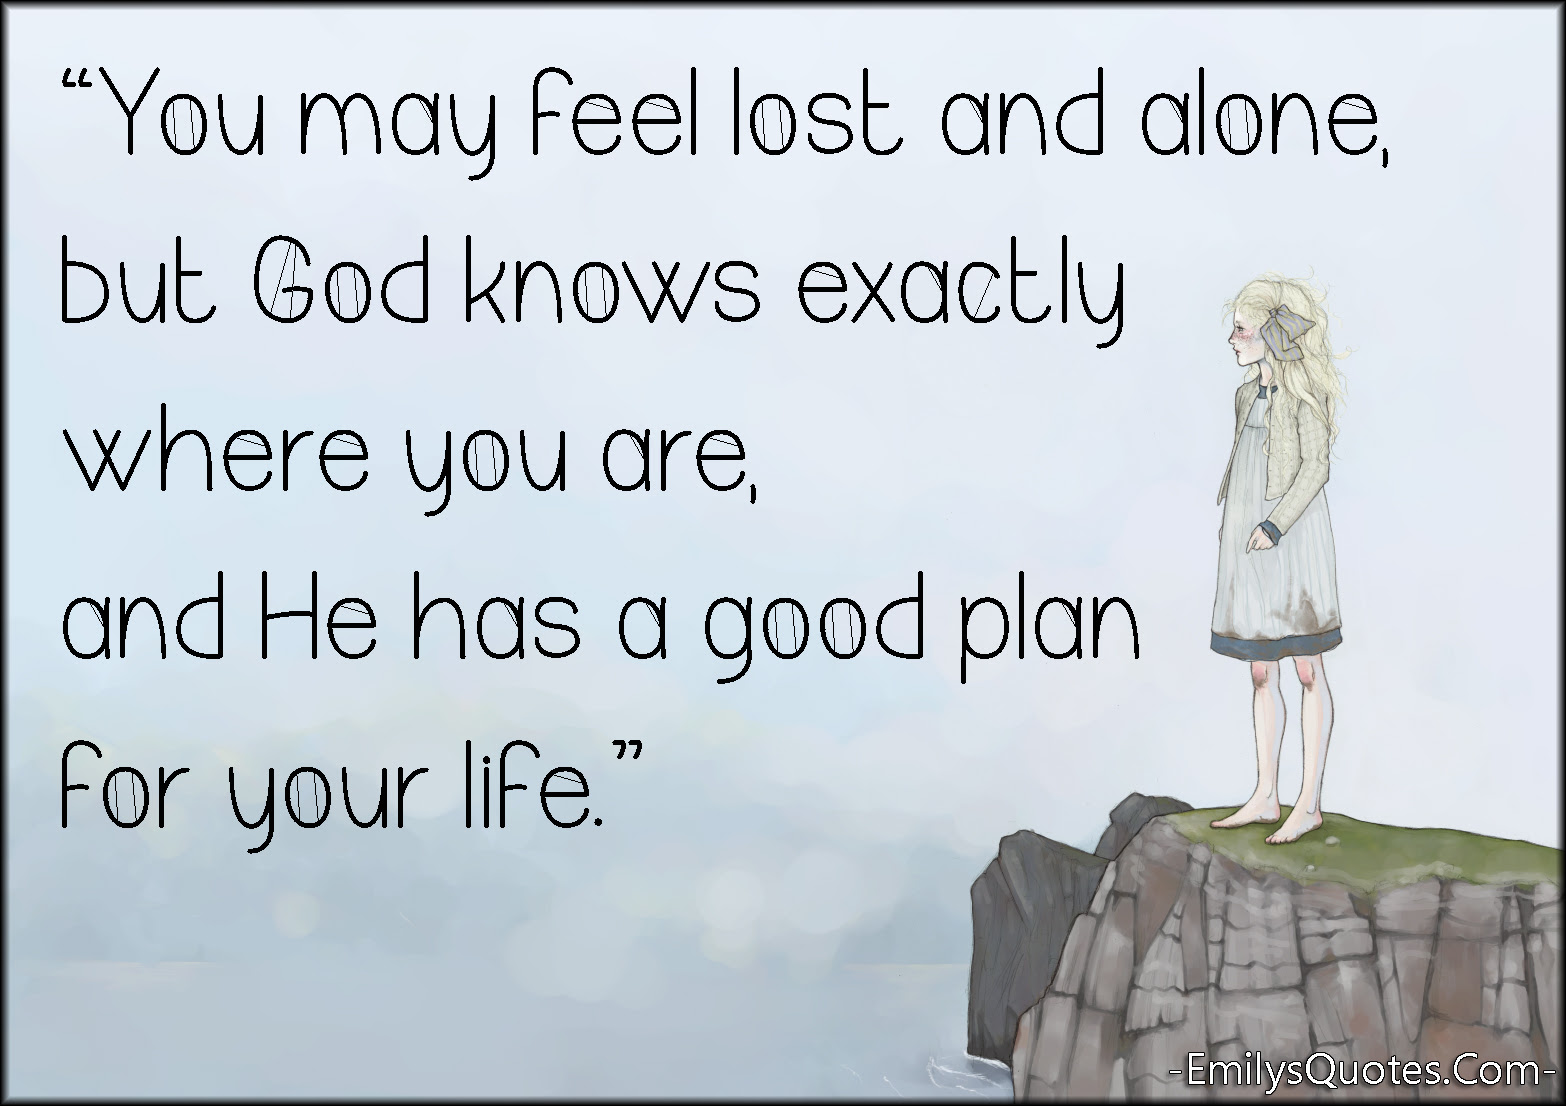 You May Feel Lost And Alone But God Knows Exactly Where You Are